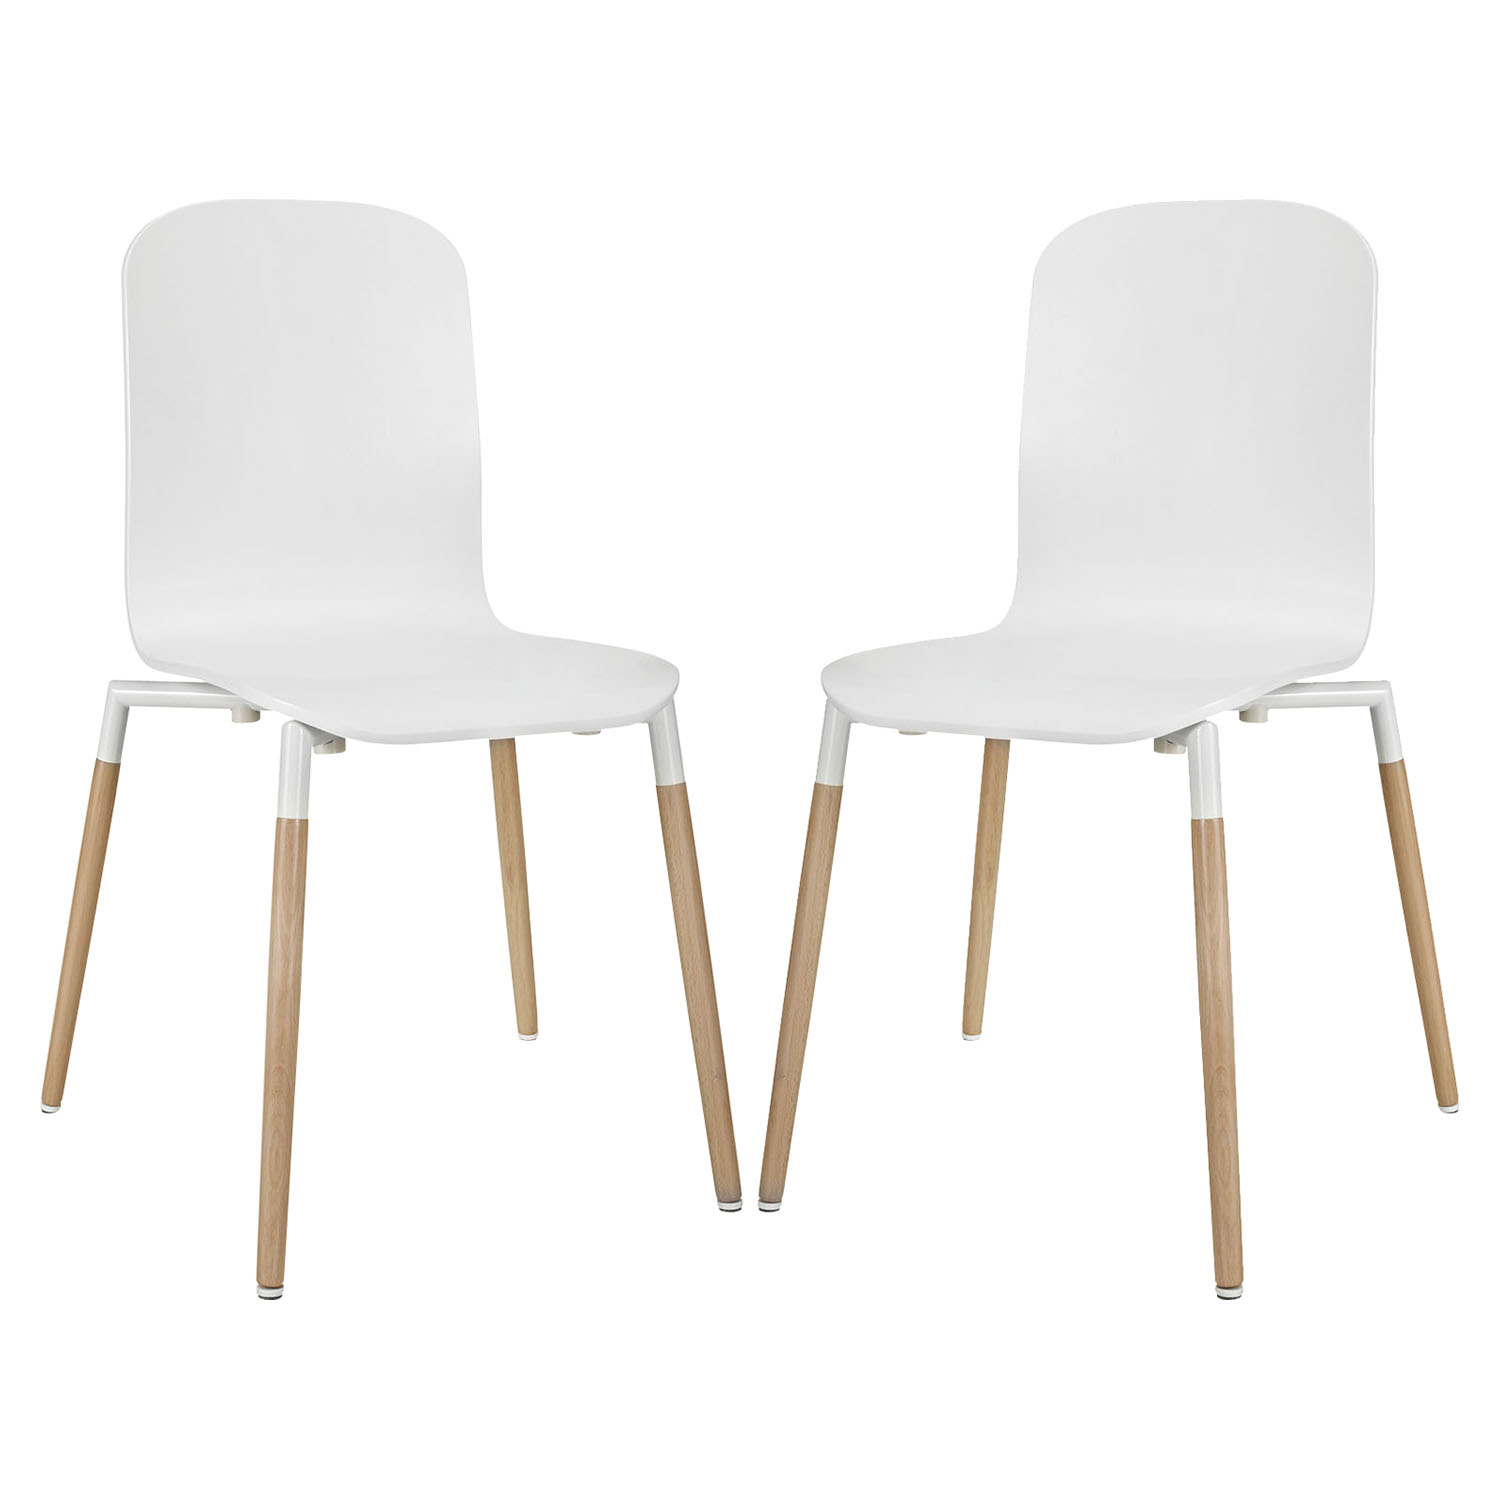 Stack Dining Chair - Wood Legs, White (Set of 2) - EEI-1372-WHI